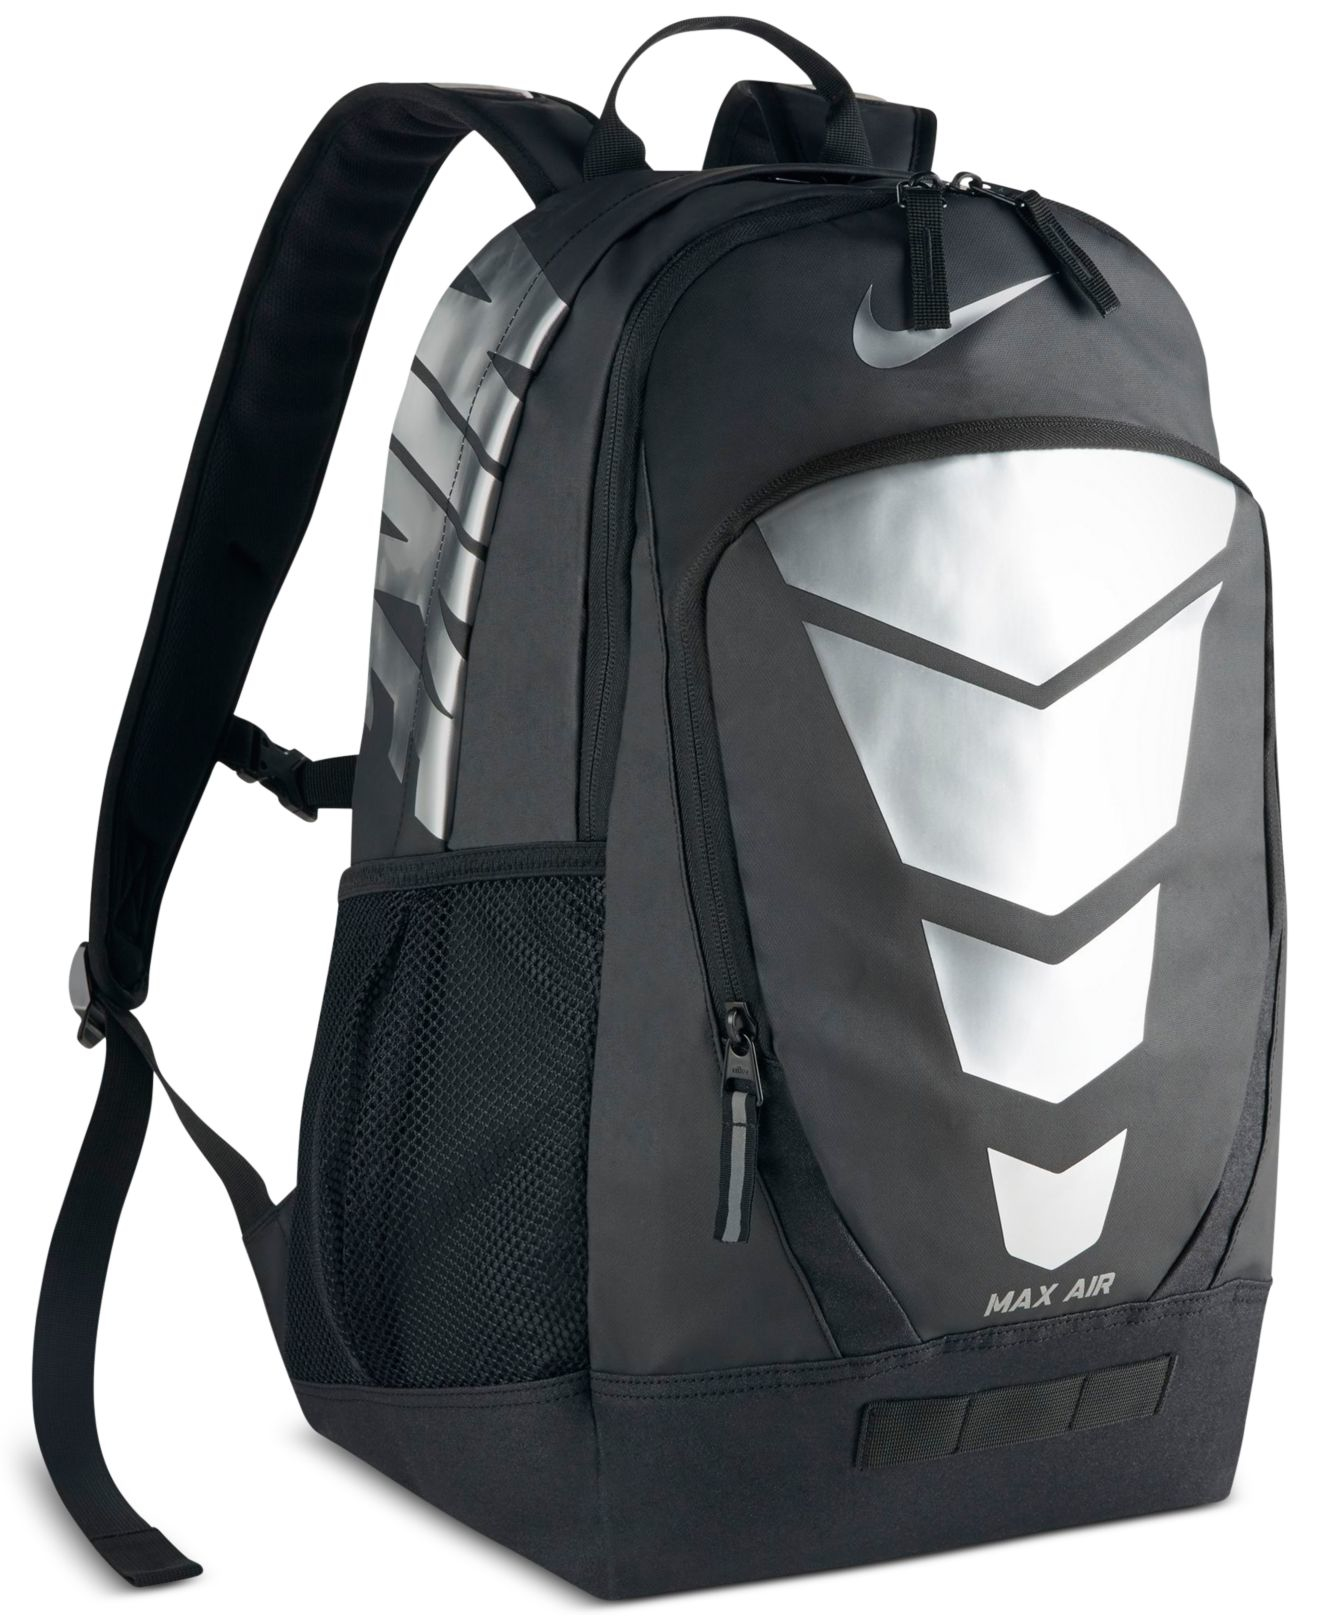 lyst nike max air vapor large energy backpack in black